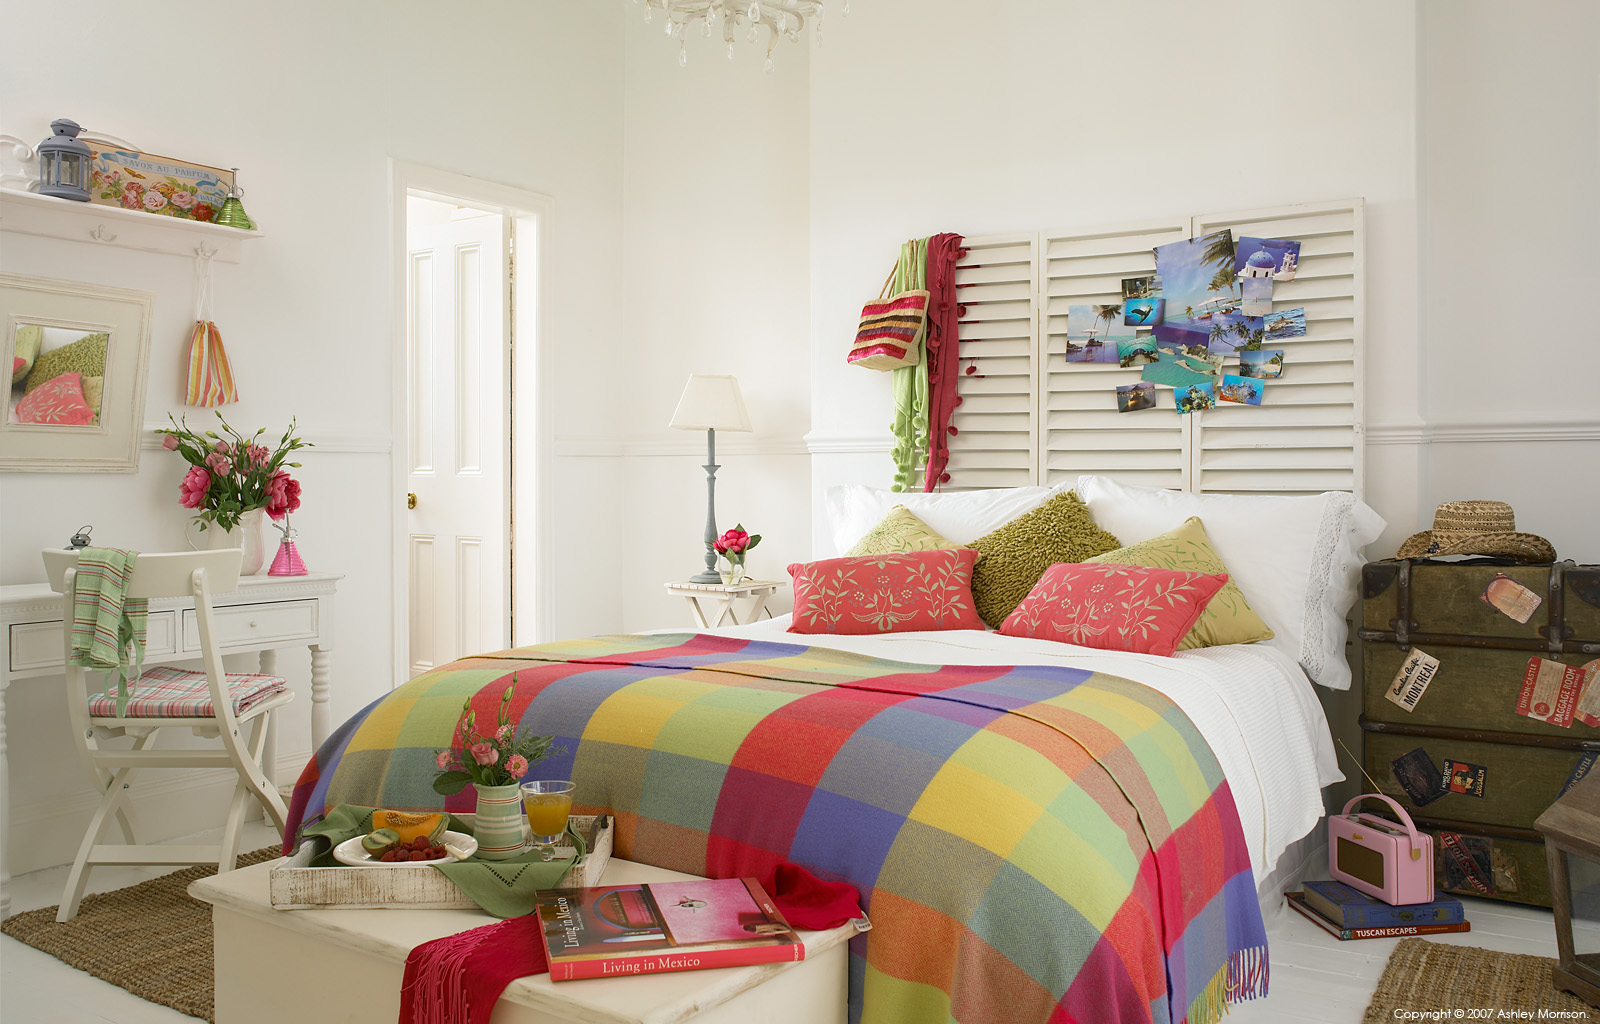 Colourful, bright and ziggy bedroom - which was produced for an Editorial makeover feature by Ashley Morrison.